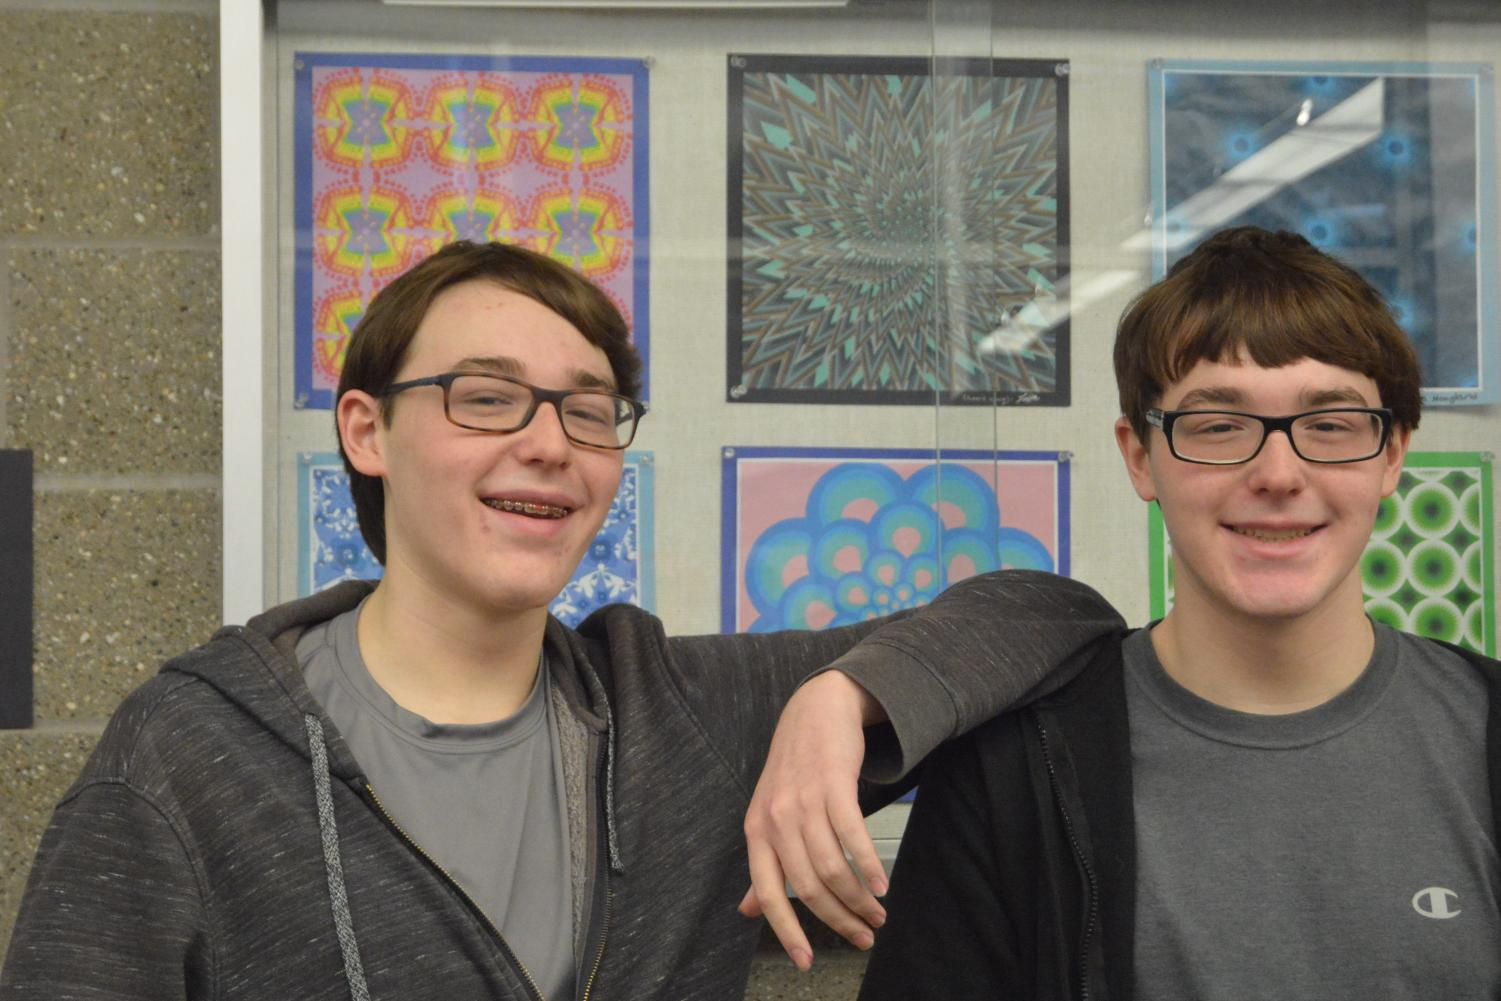 Freshmen Jacob Bazer and Matthew Bazer of Ocean agreed to stay together for high school.